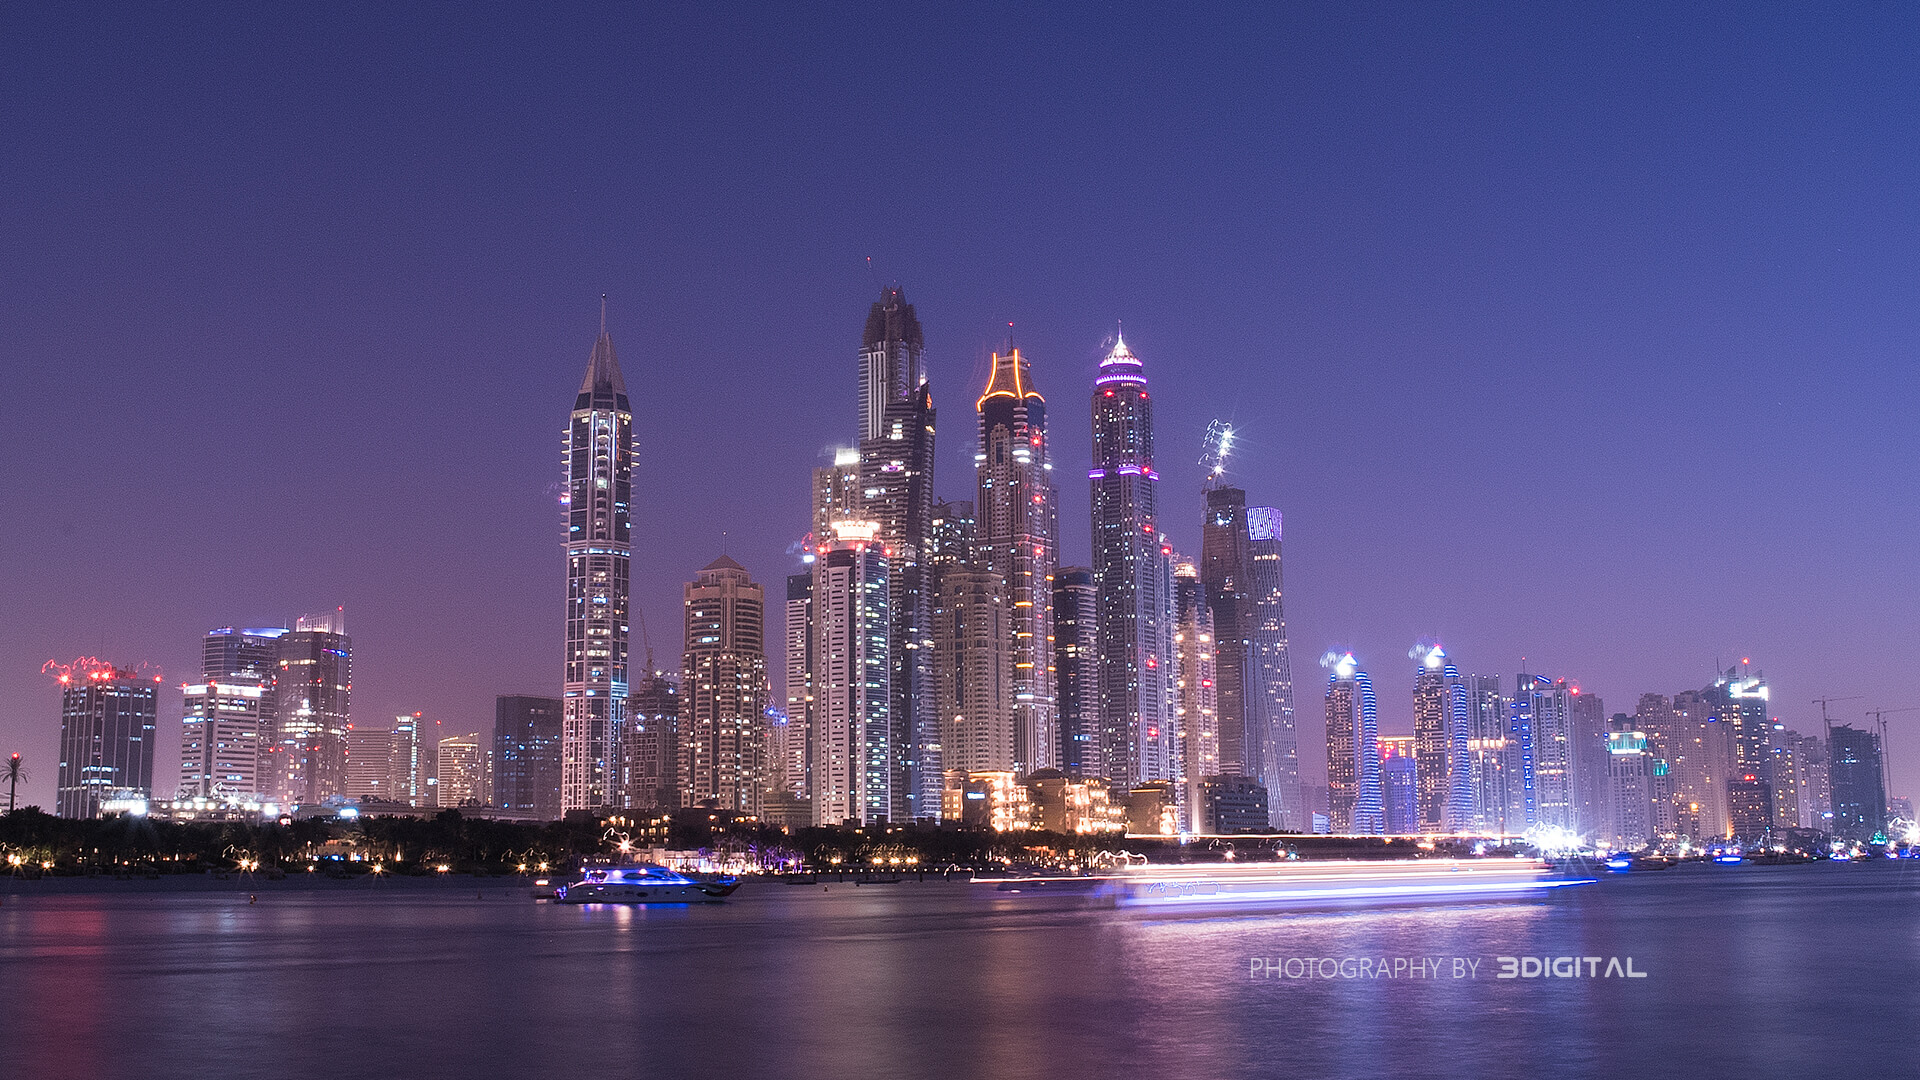 Skyline Dubai Marketing Company 3Digital